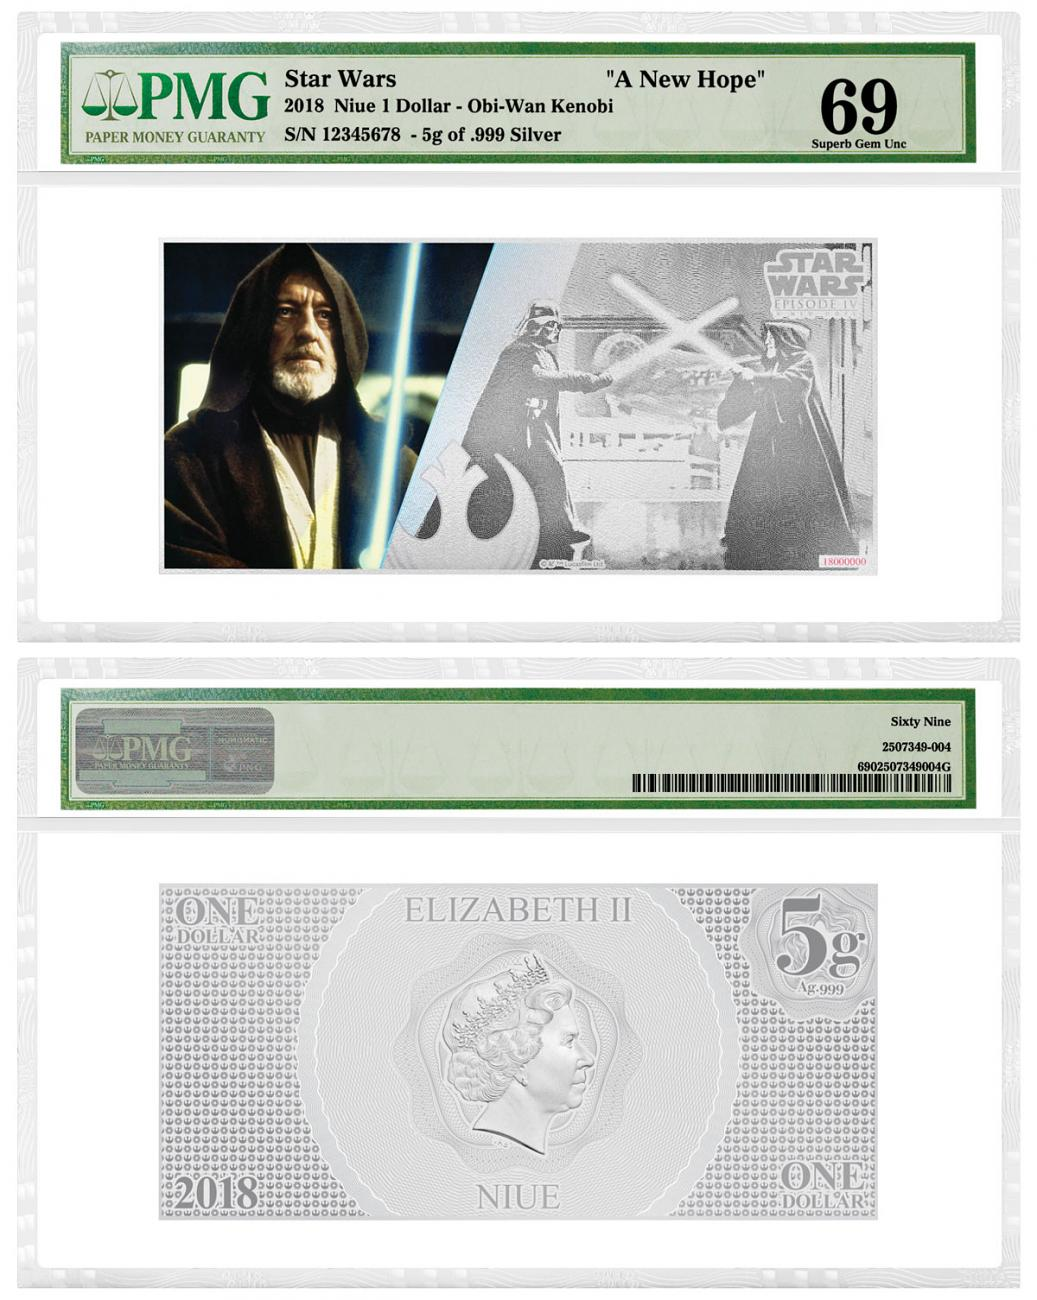 2018 Niue Star Wars: A New Hope - Obi-Wan Kenobi Foil Note 5 g Silver Colorized $1 Coin PMG GEM Unc 69